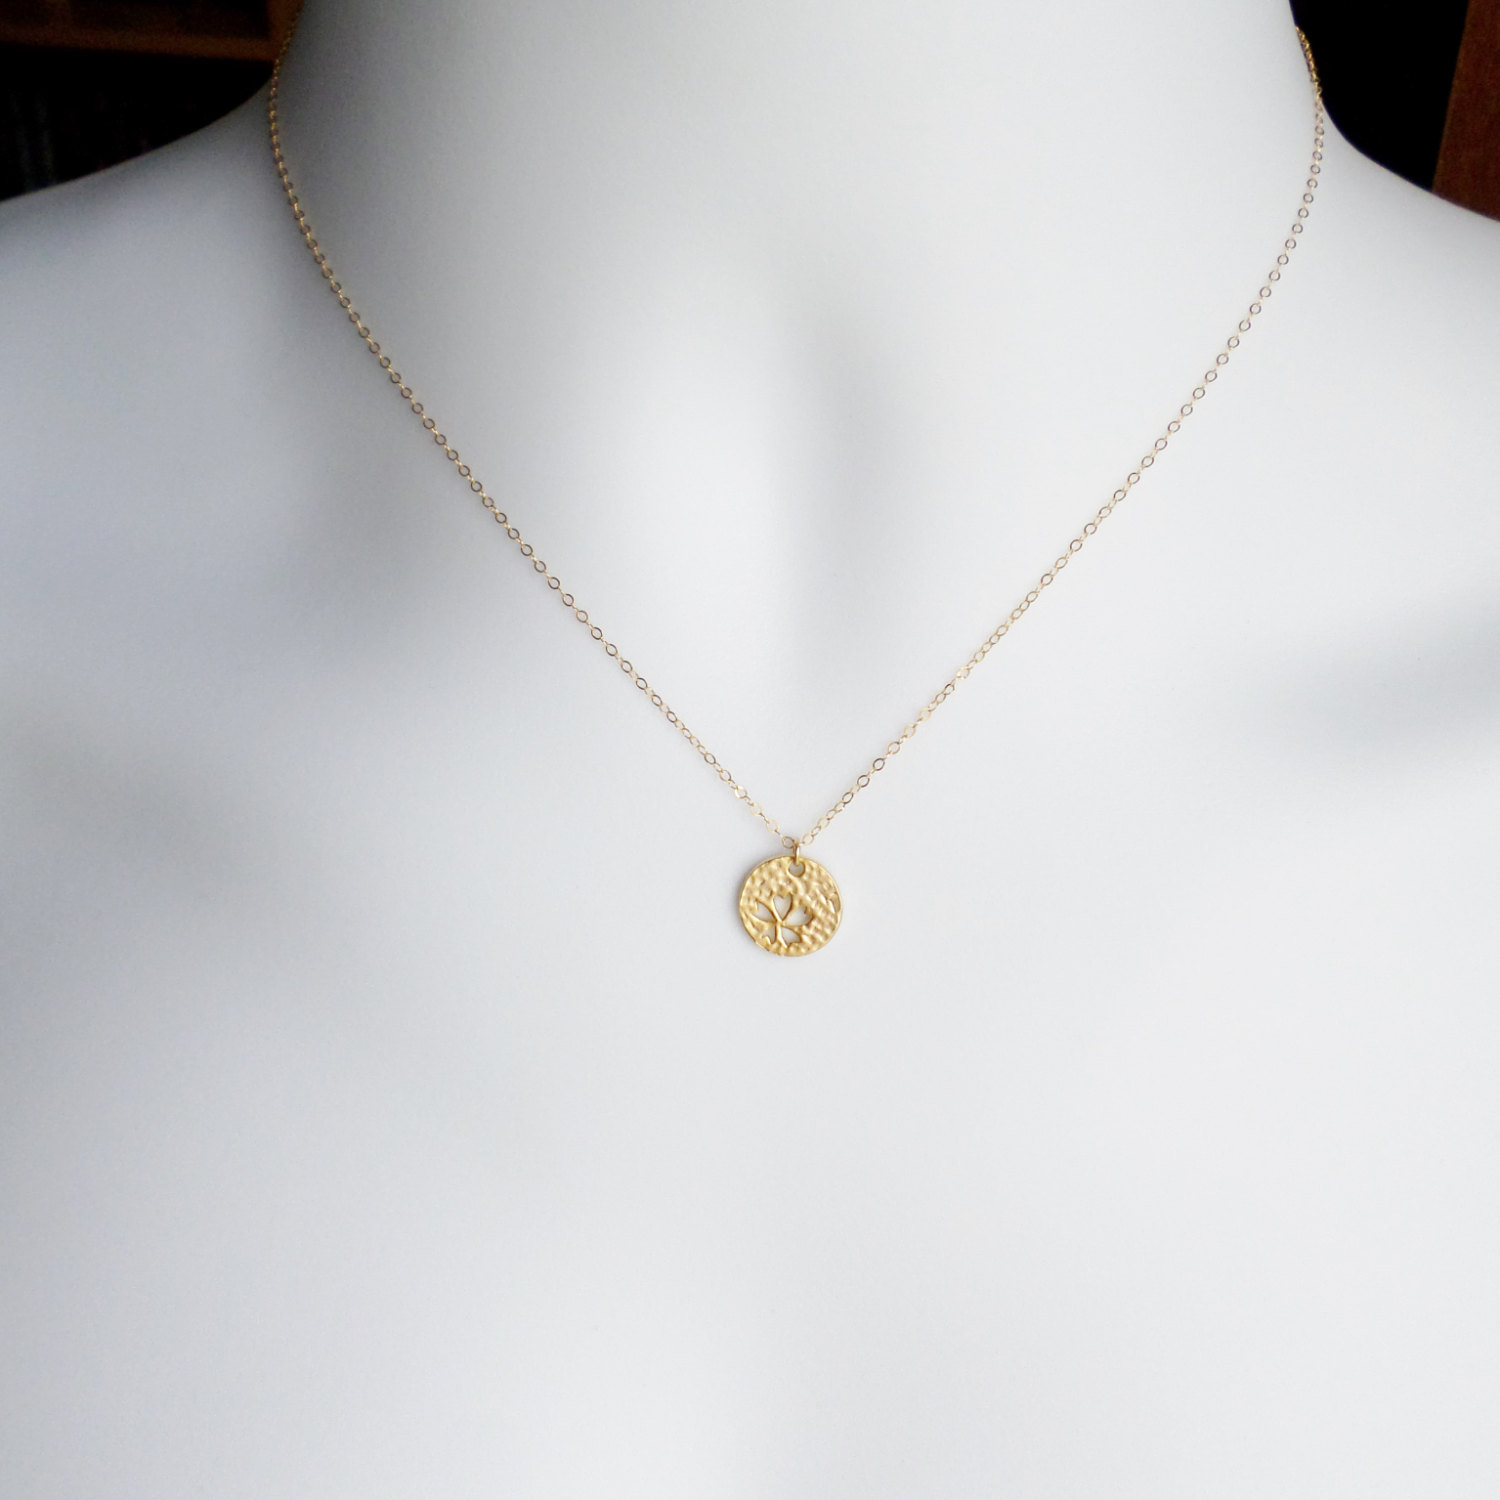 Gold disc necklace four leaf clover cutout disc charm necklace il fullxfull489613594 2lad small aloadofball Image collections